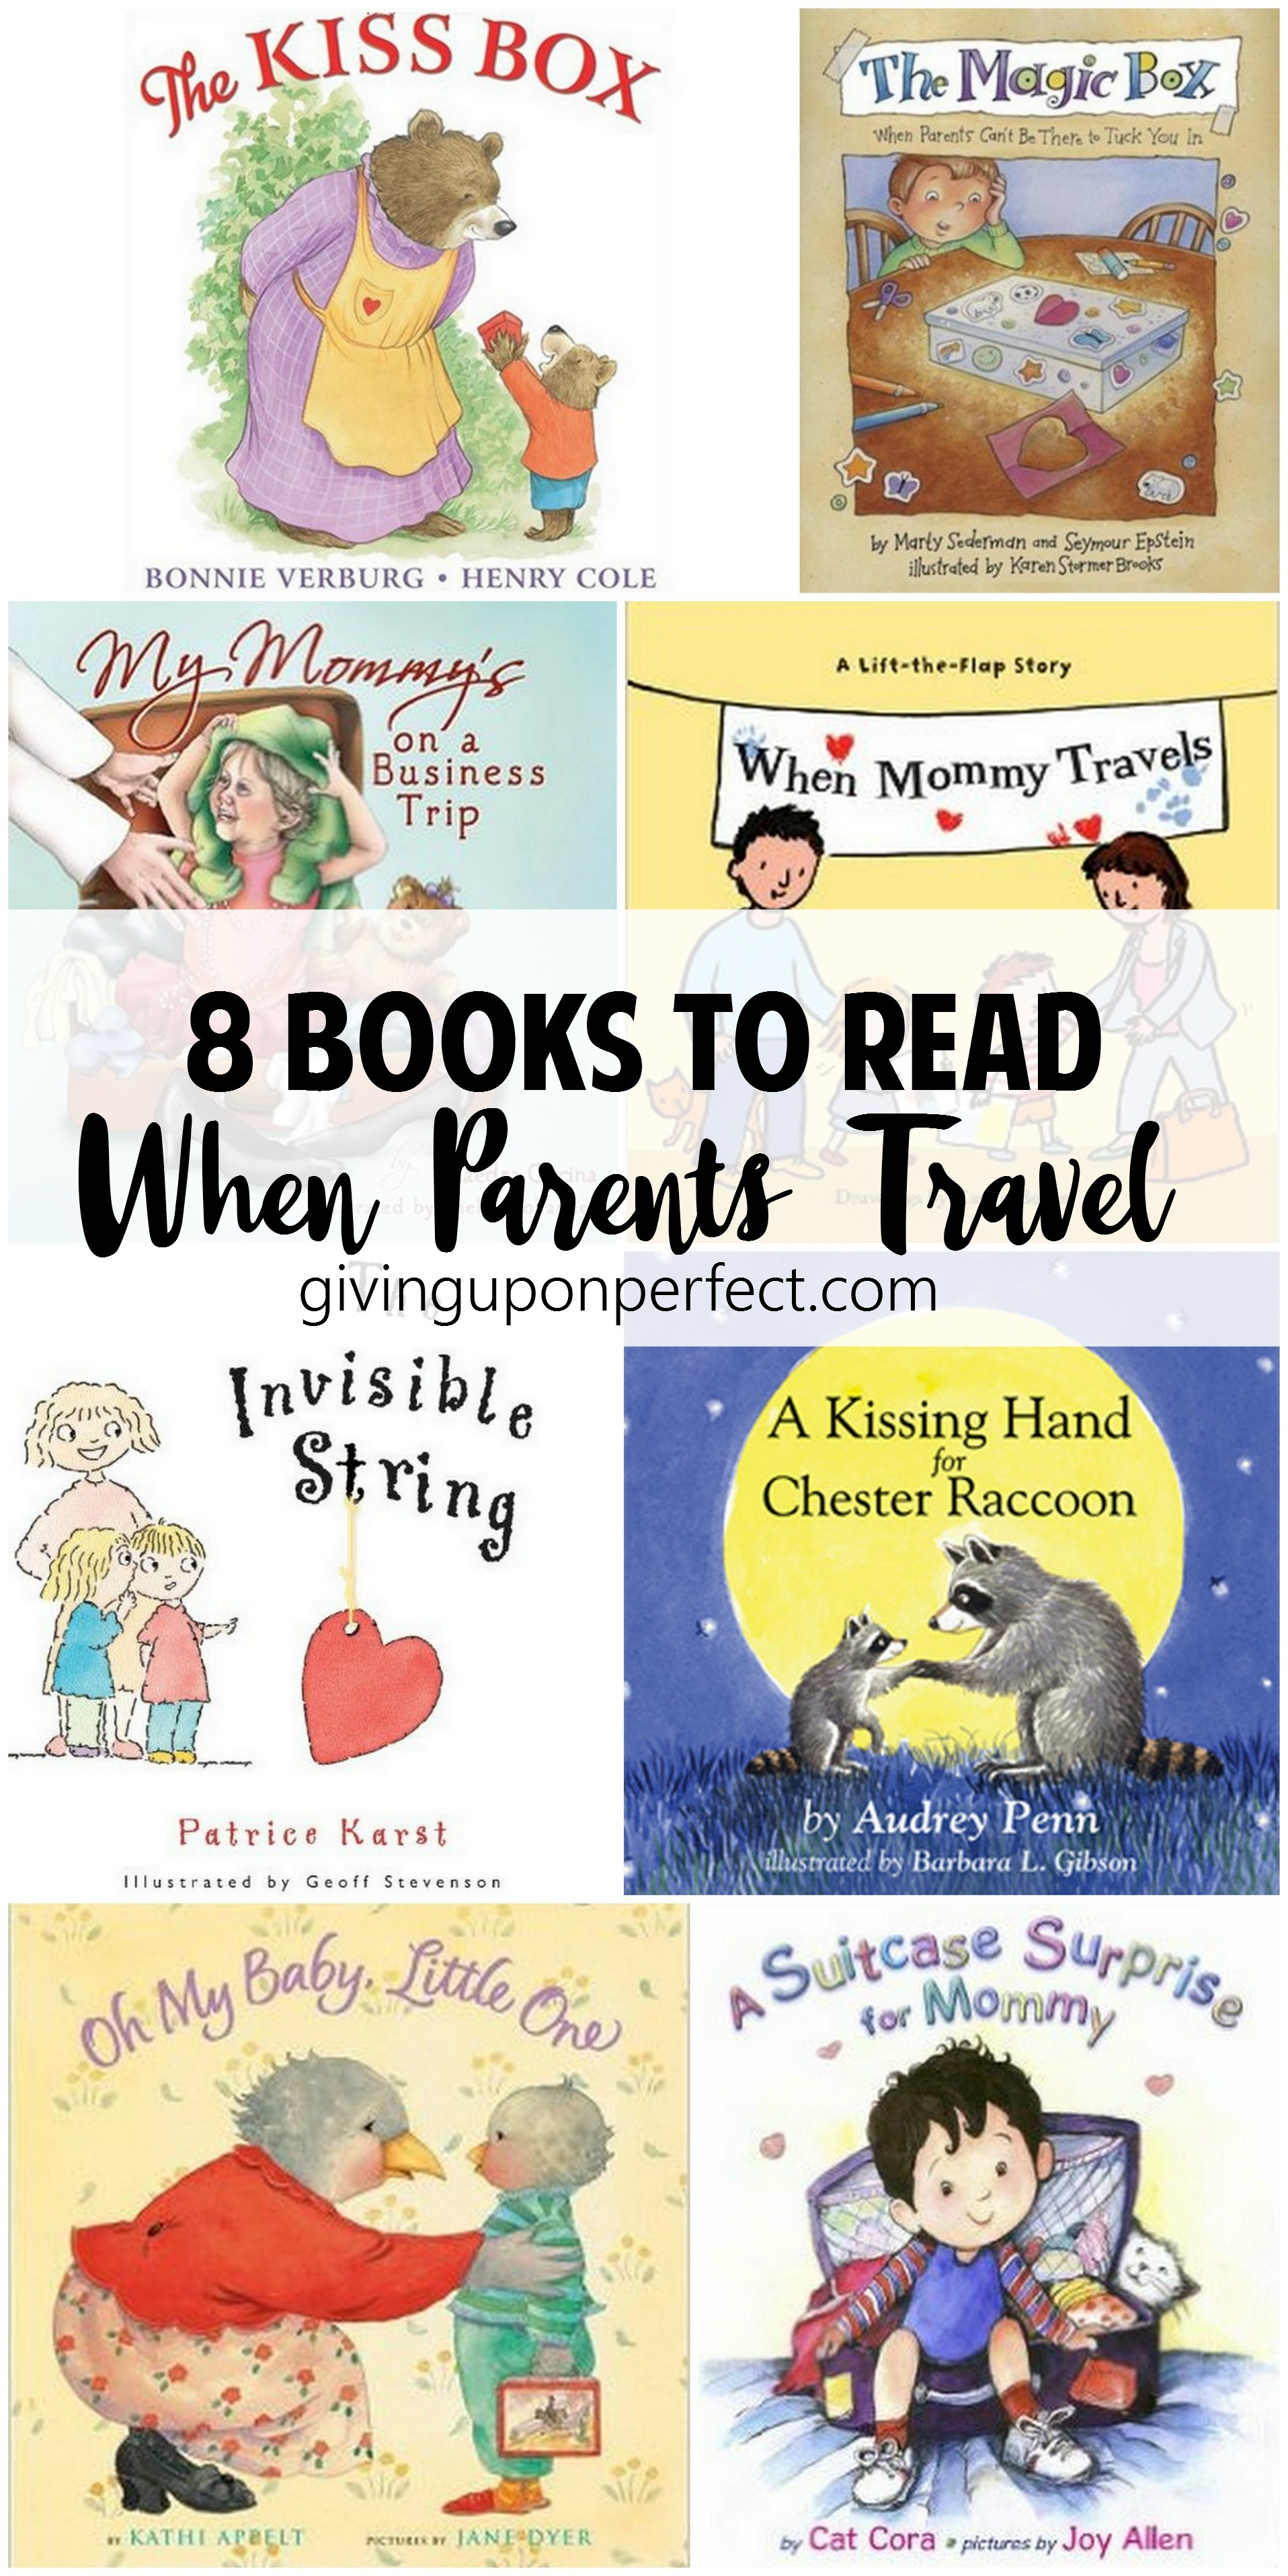 8 Children's Books to Read When Parents Travel | via givinguponperfect.com